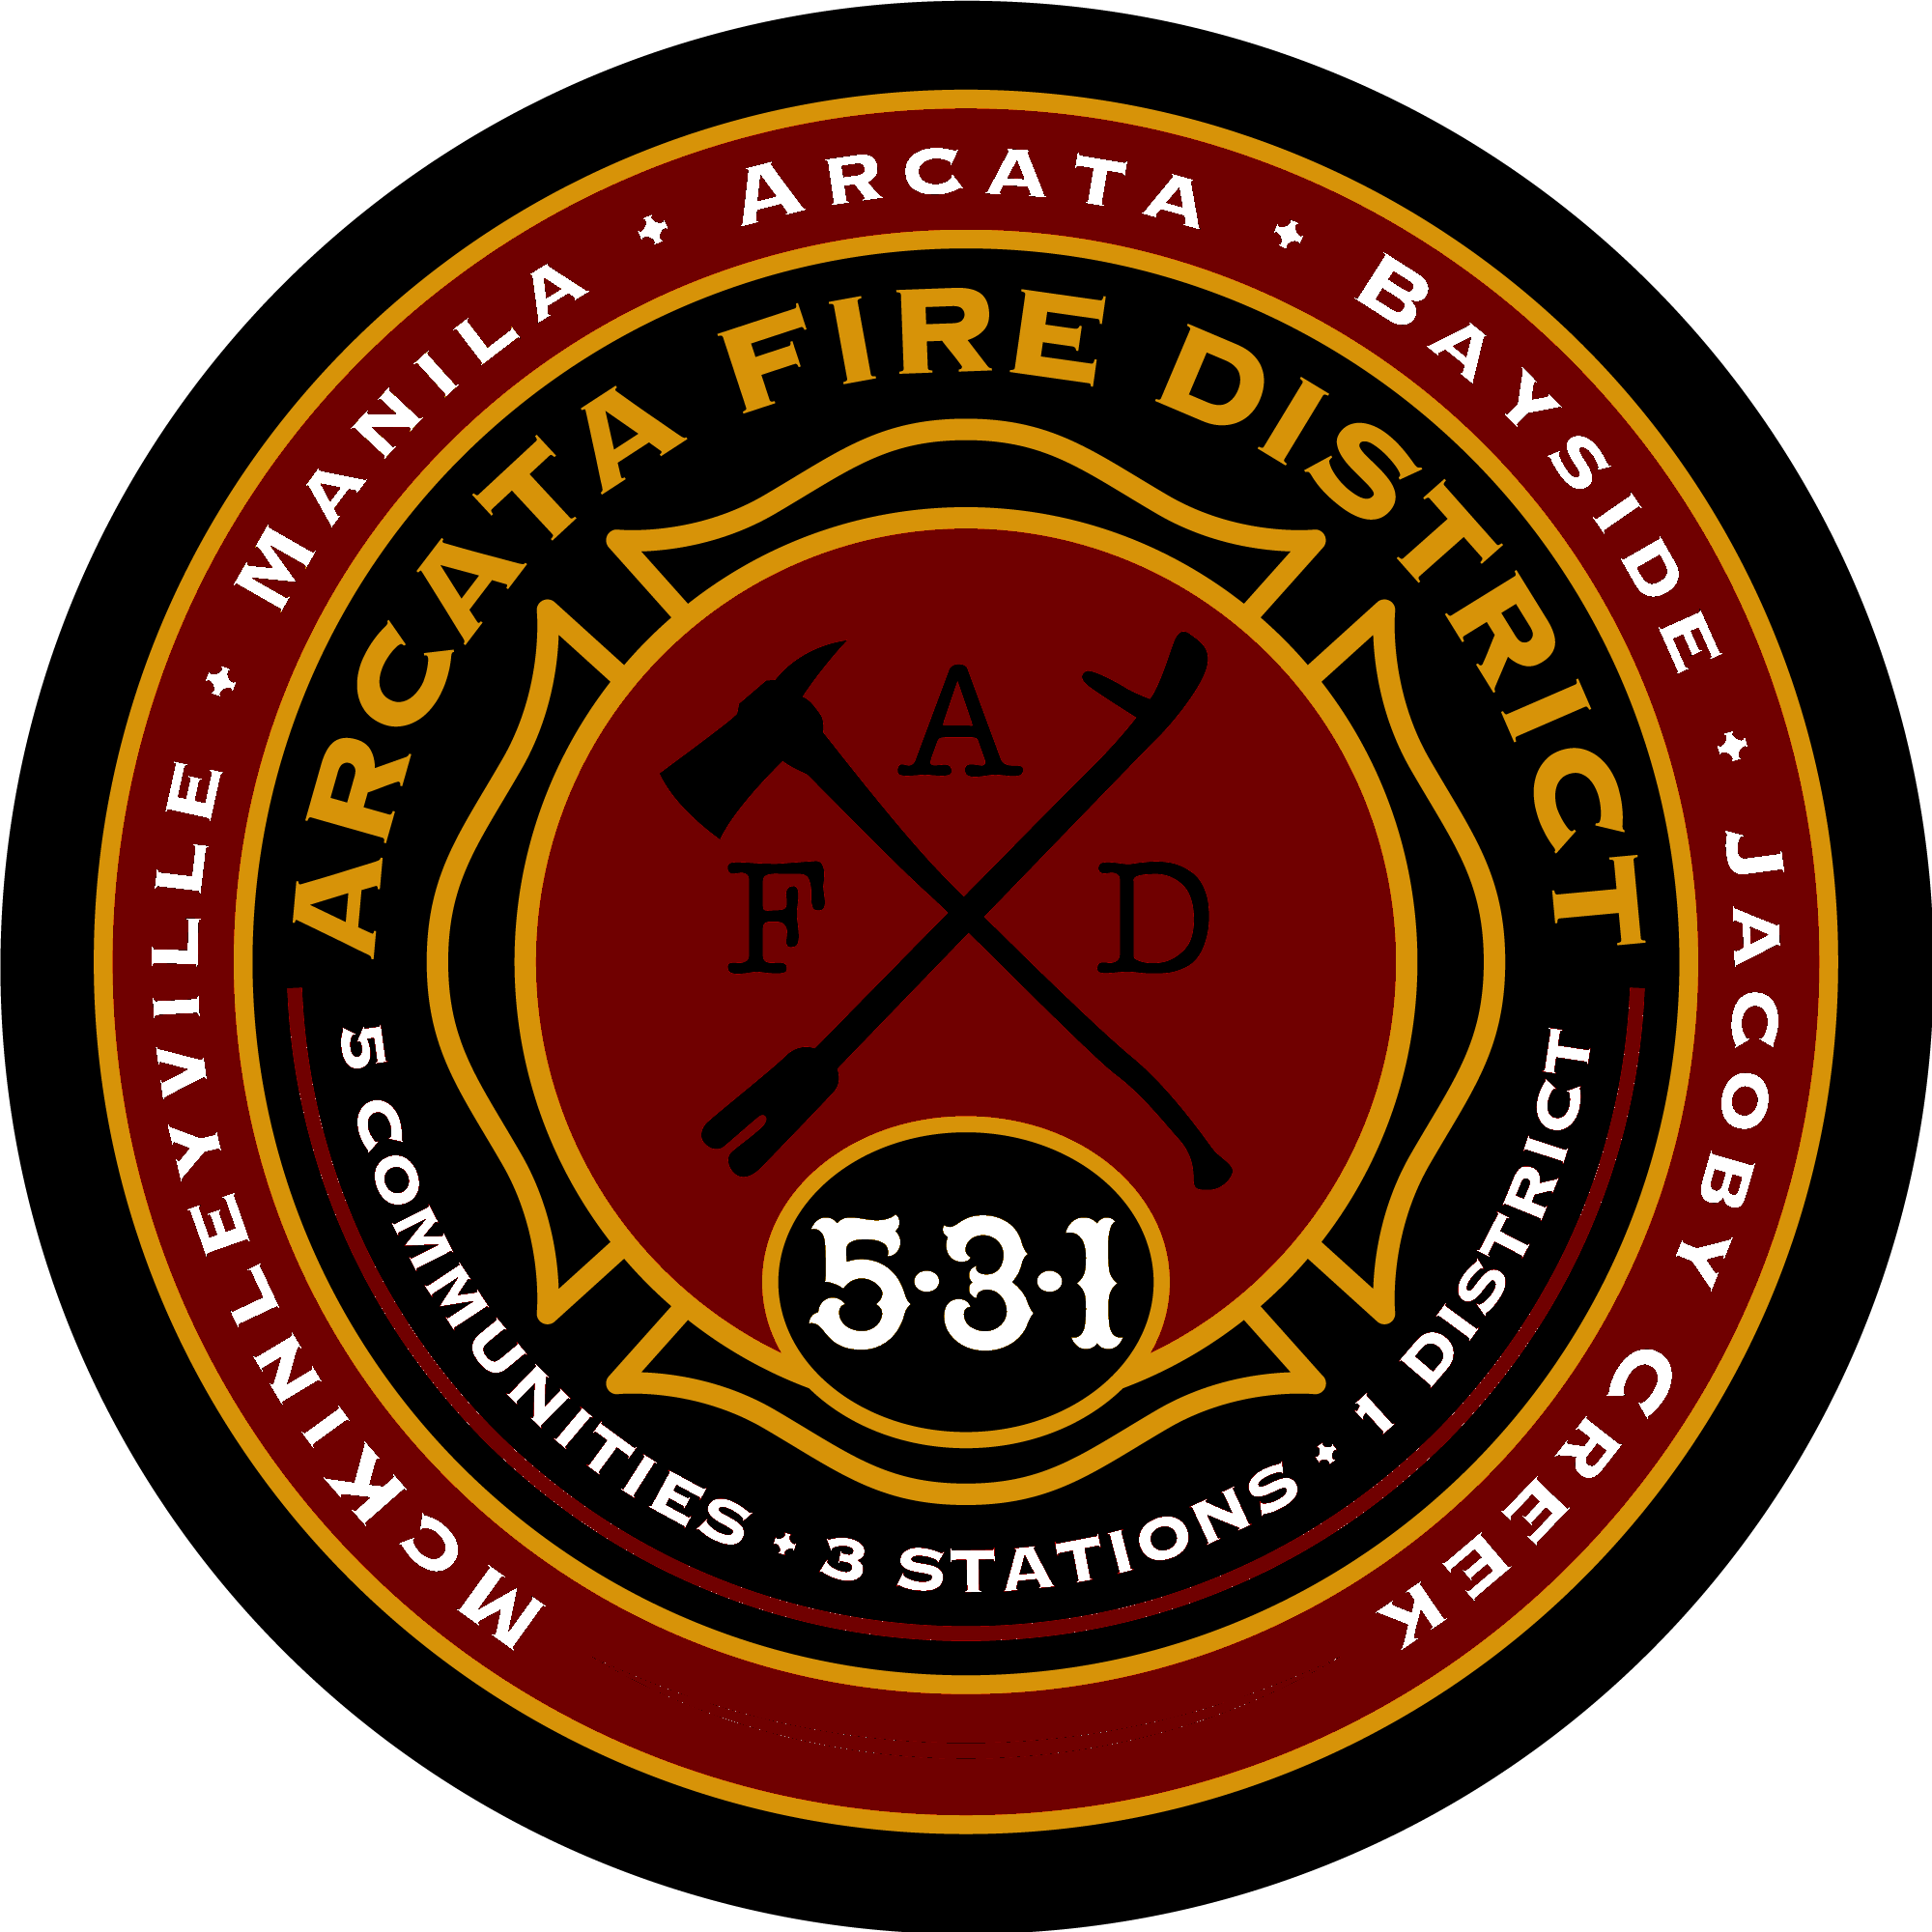 Arcata Fire District